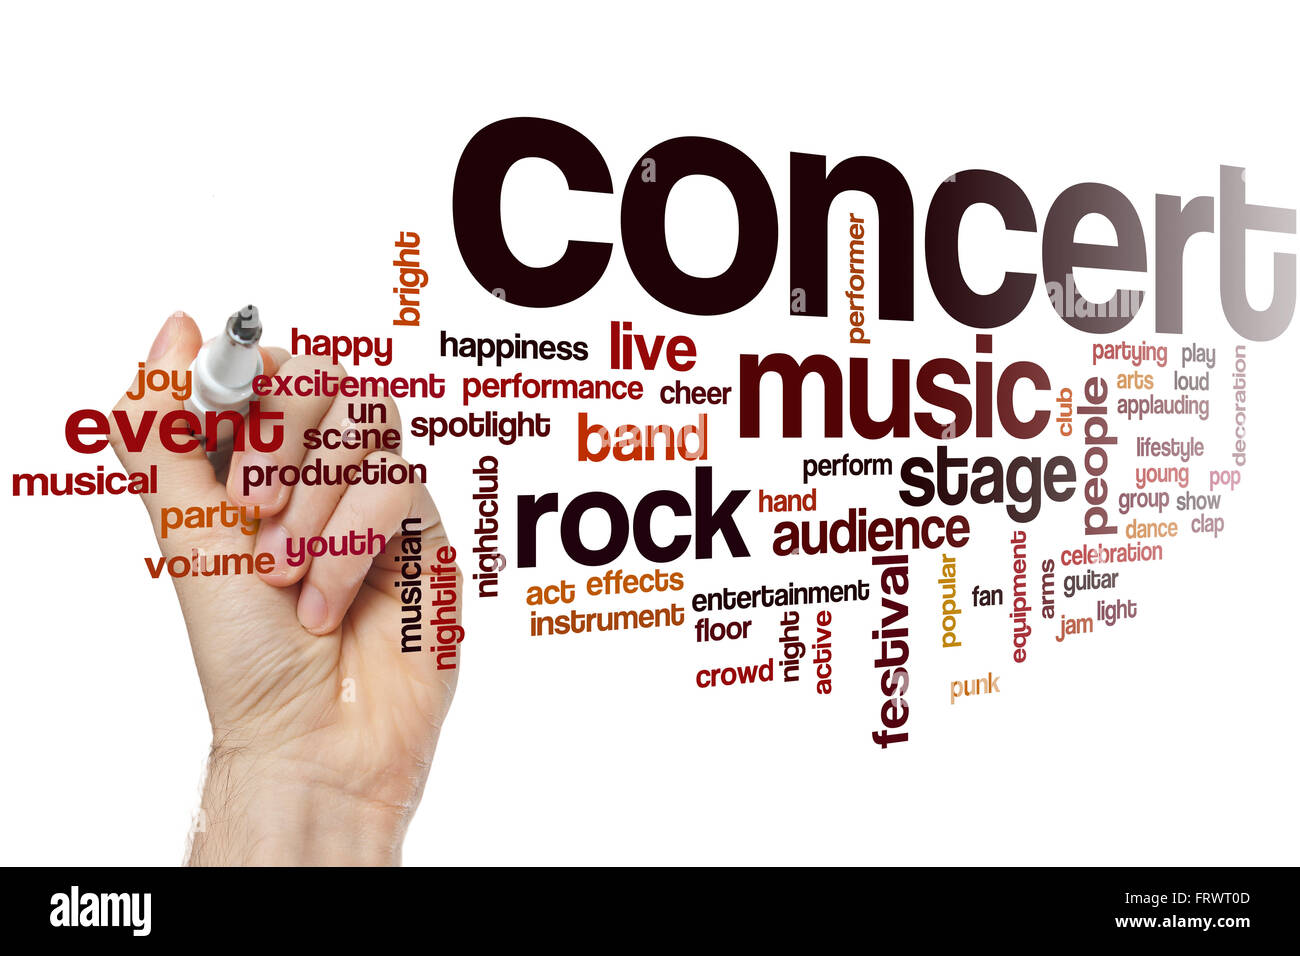 Concert word cloud concept with music live related tags - Stock Image